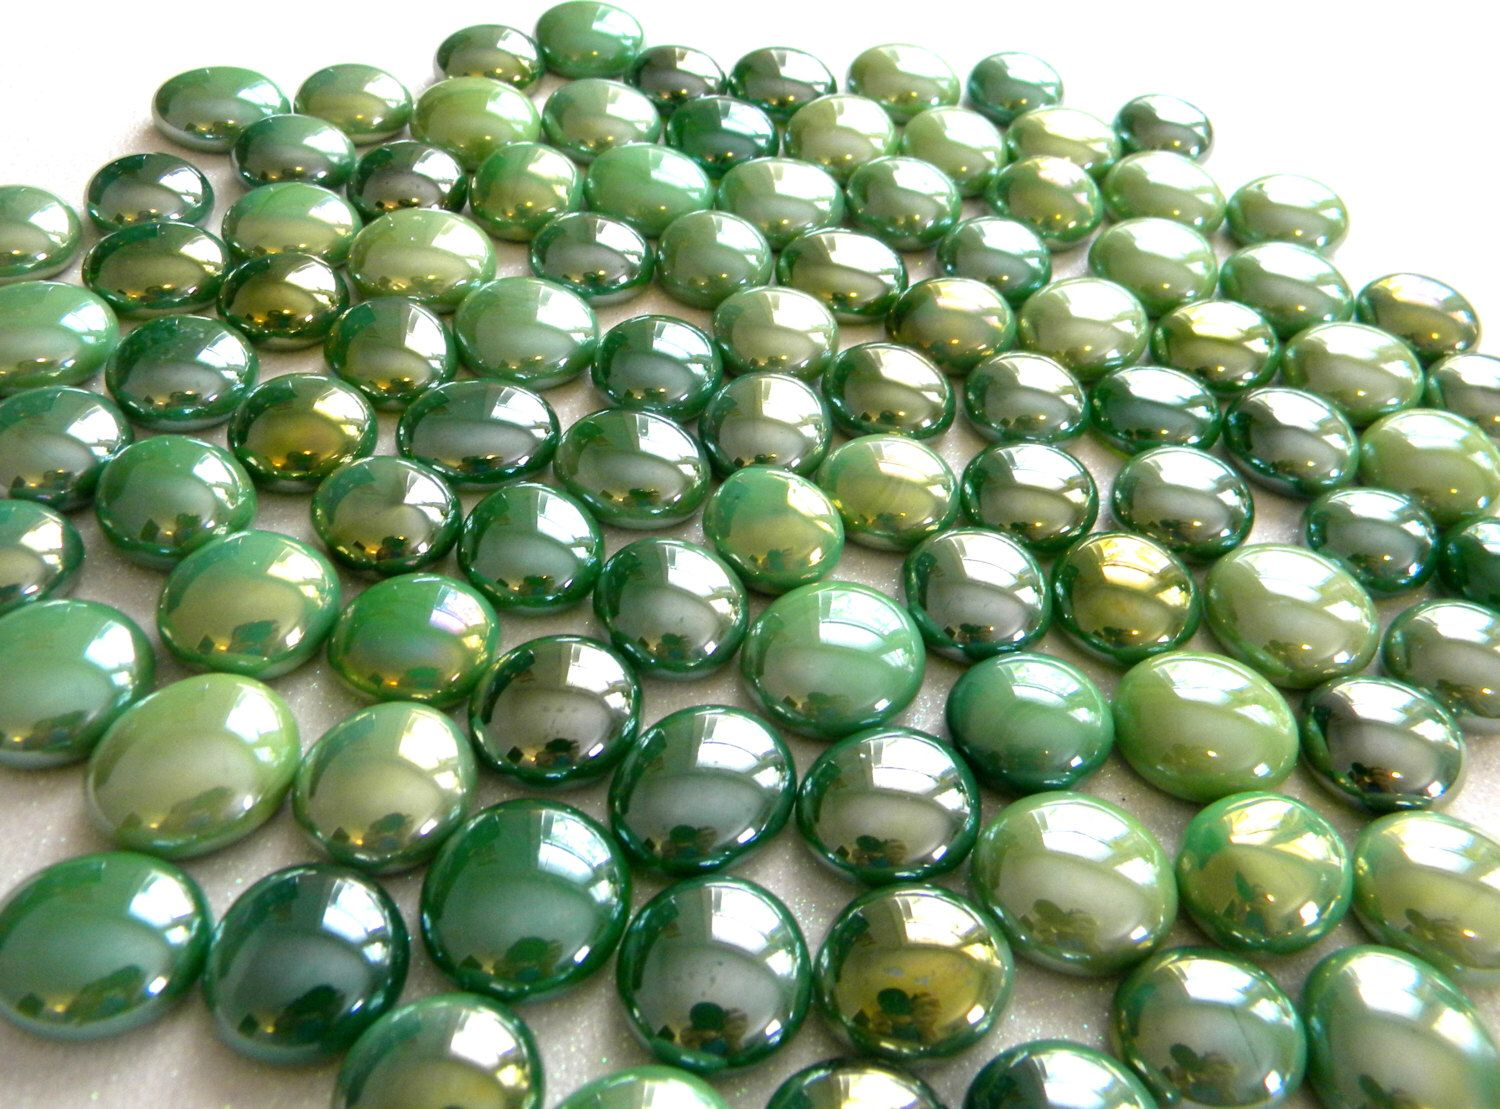 50 Glass Gems Shades Of Green Mosaic Supplies Half Marbles Cabochons Glass Nuggets By Starrynightstudios9 Glass Gems Mosaic Supplies 50th Glass